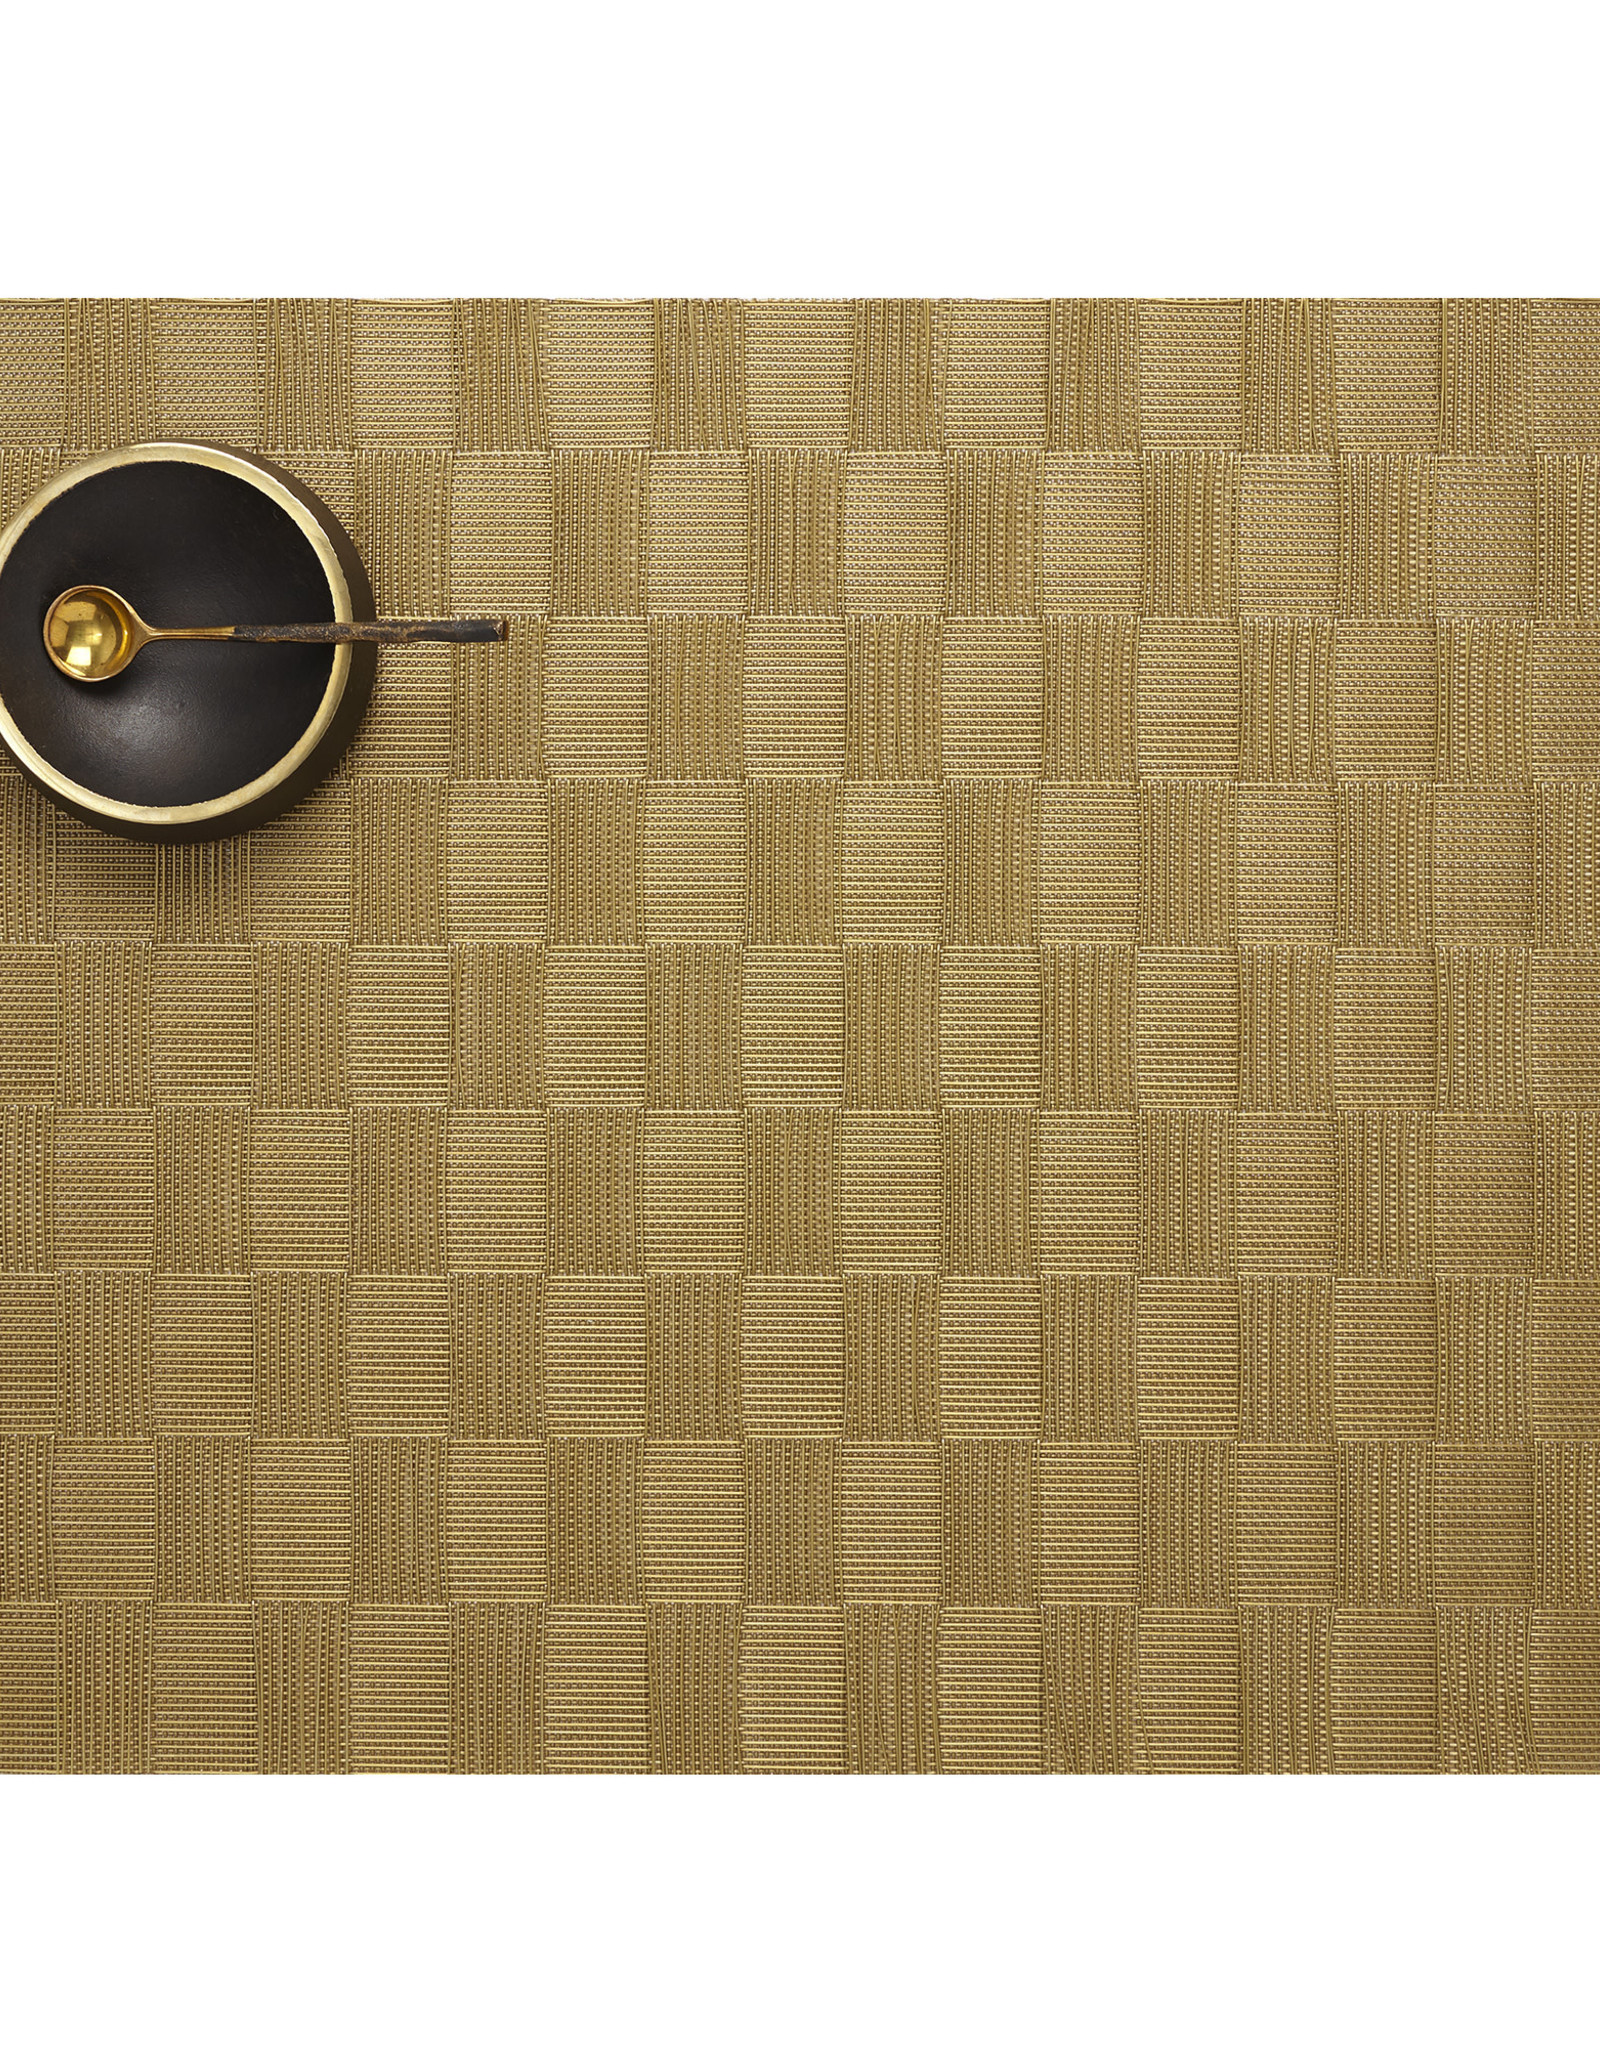 Chilewich Domino Tablemat 14x19, GOLD